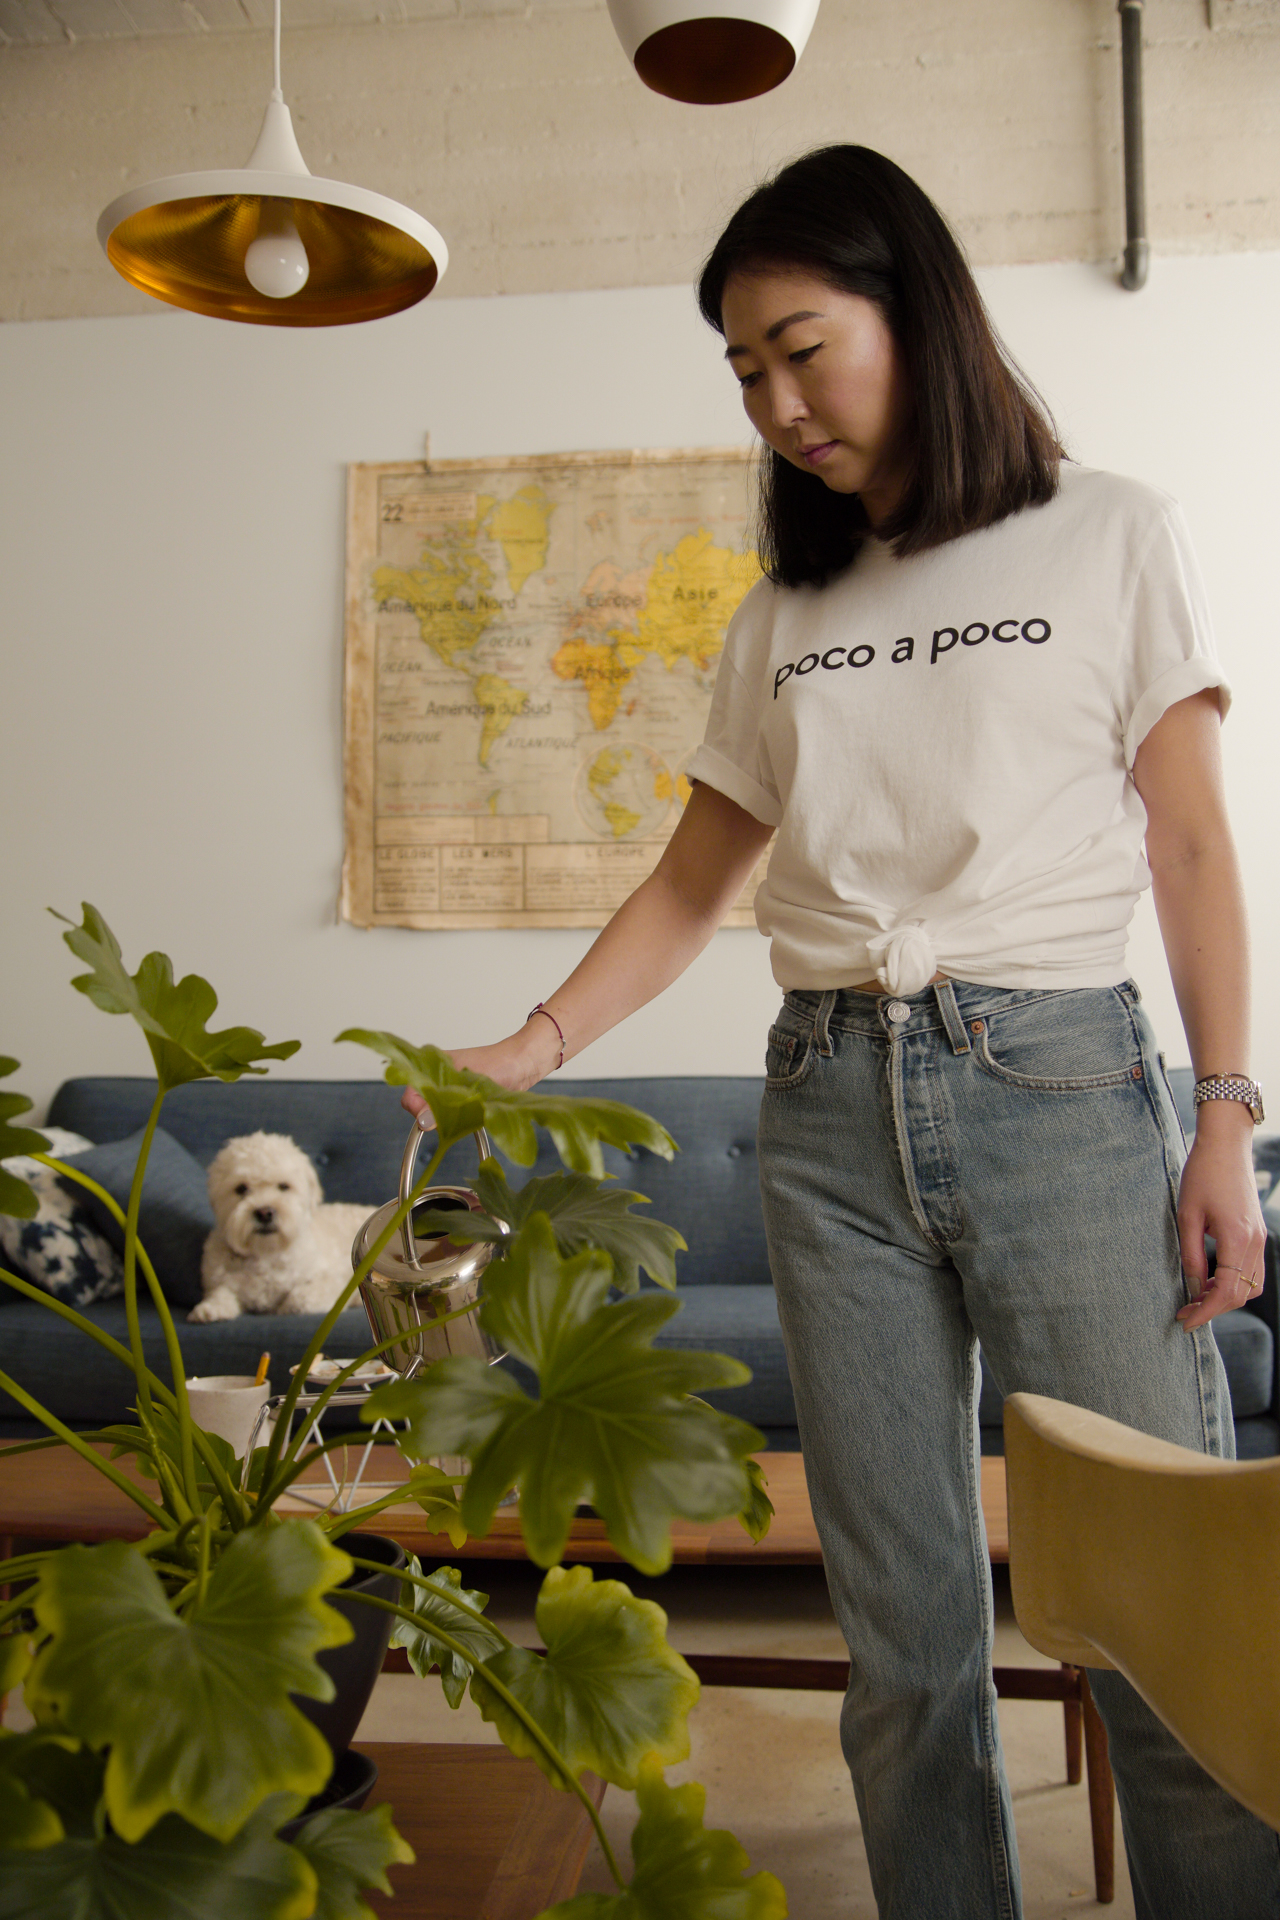 Poco a Poco - Ryze Project, an online destination offering curated, handmade accessories inspired by and originating from the art, fashion, and design worlds of Europe, is launching a T-shirt series that speaks to the European and SoCal lifestyle. The T-shirt design reads